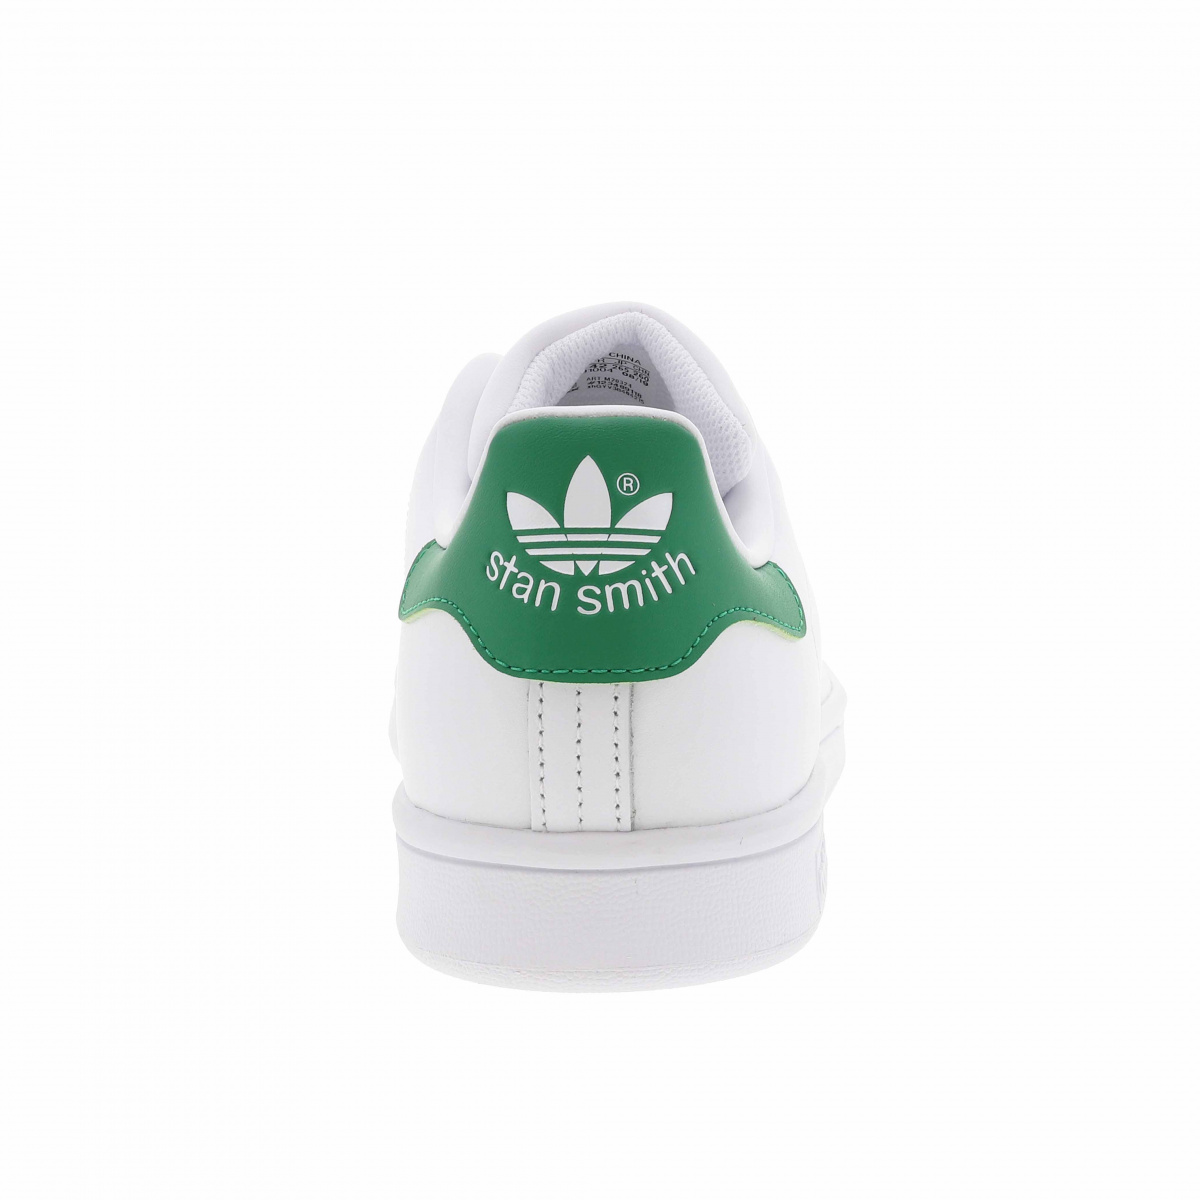 ADIDAS ORIGINALS Baskets basses cuir mixte enfant STAN SMITH